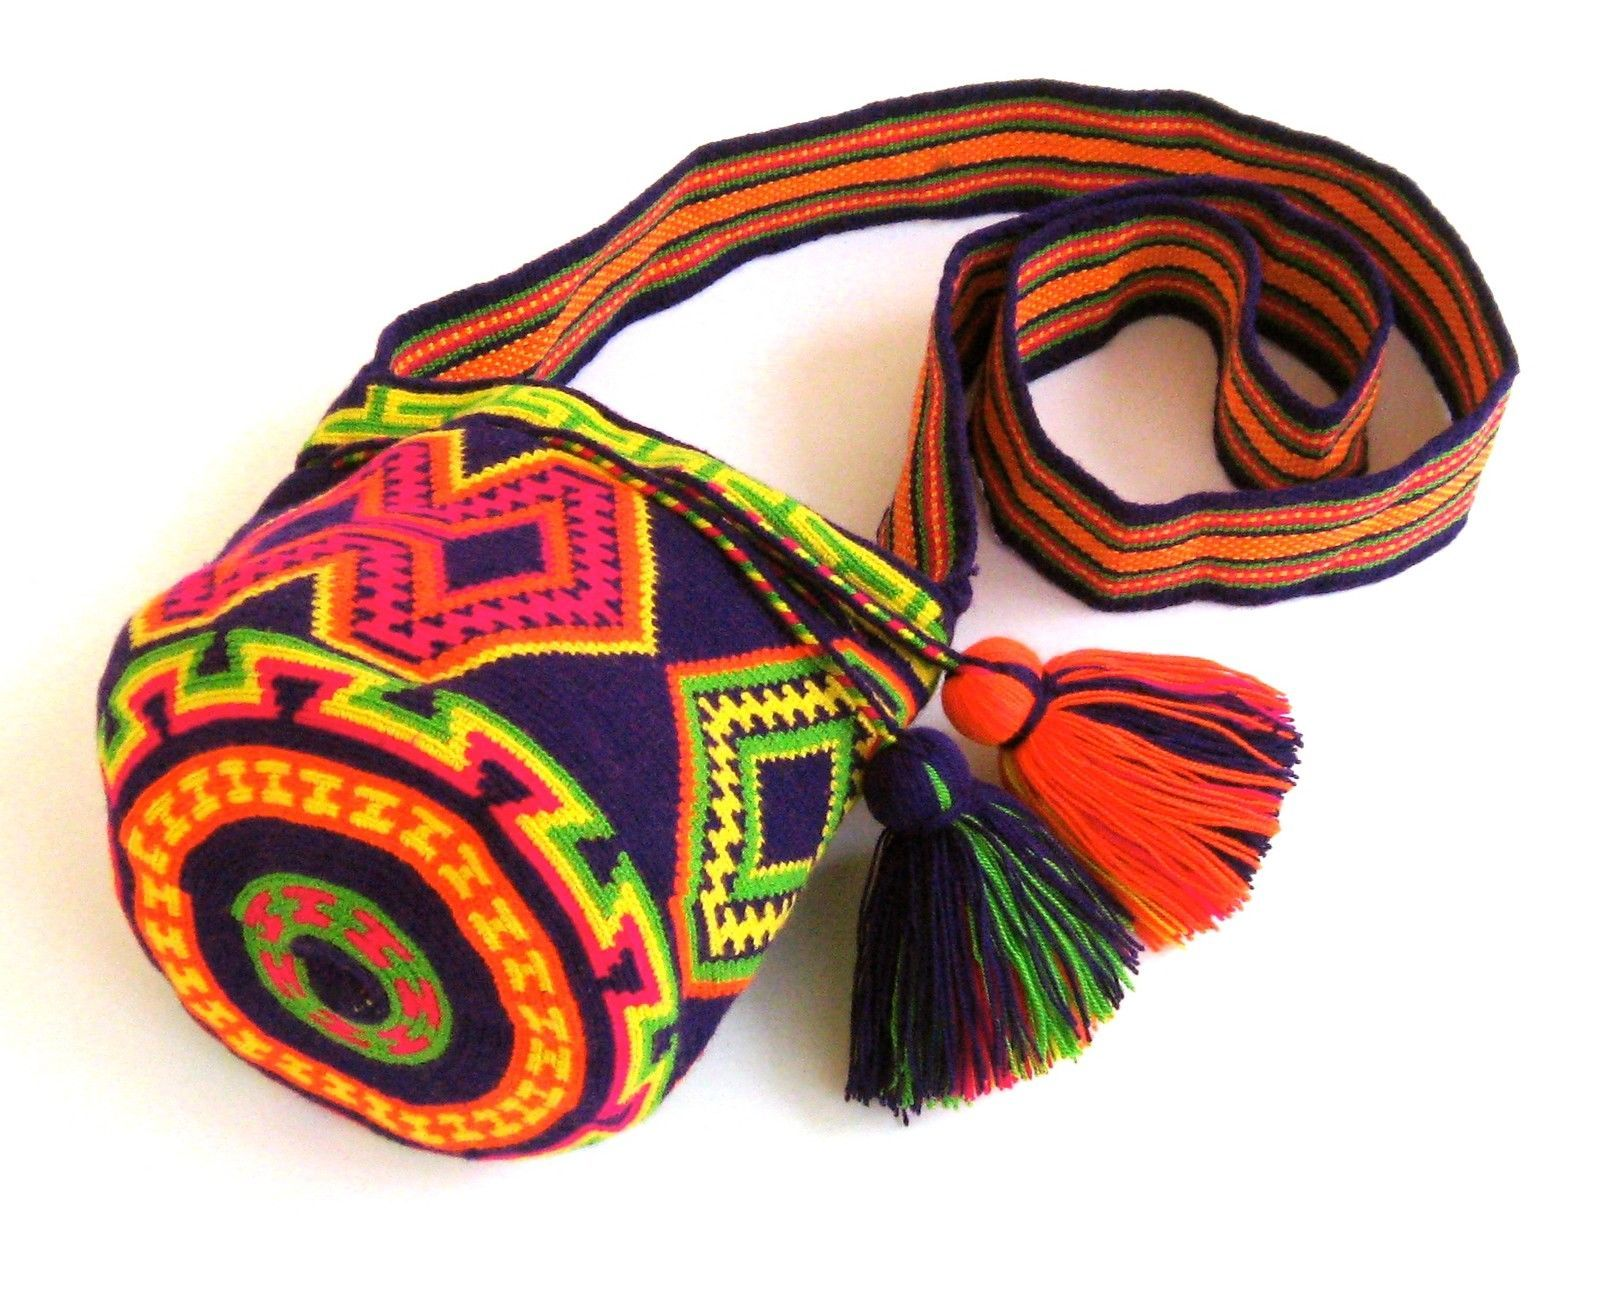 hight resolution of mochila wayuu small size bag tight 1 2 stitch crochet handmade ebay 64 00